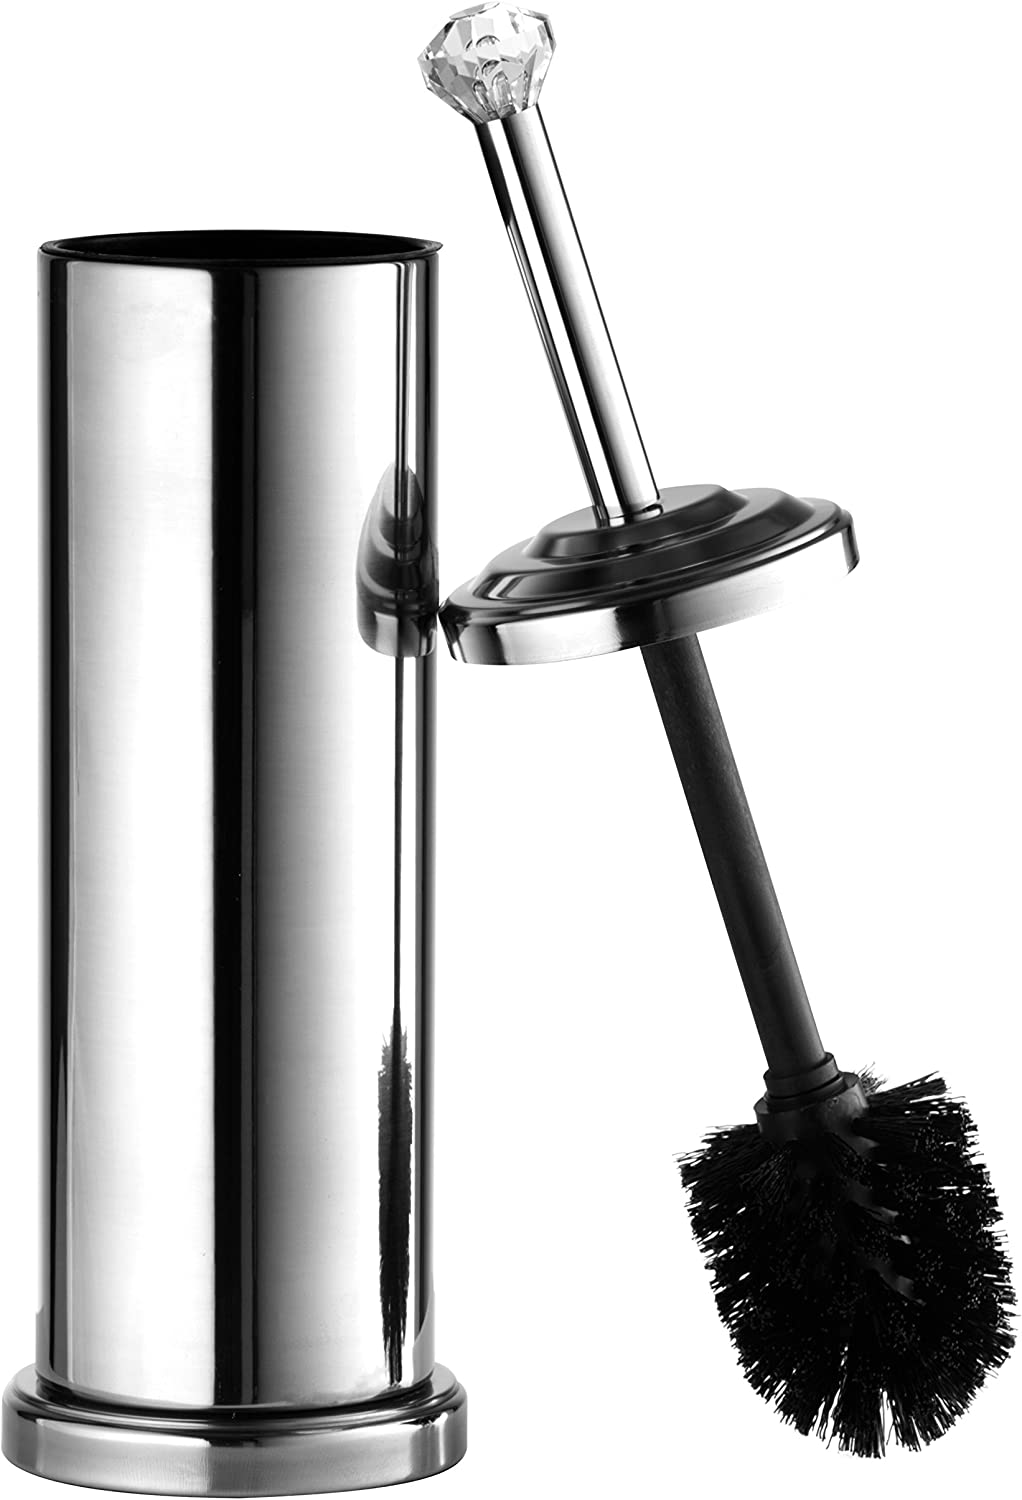 TB112A CHR AMG and Enchante Accessories Chrome Diamond Toilet Brush and Holder